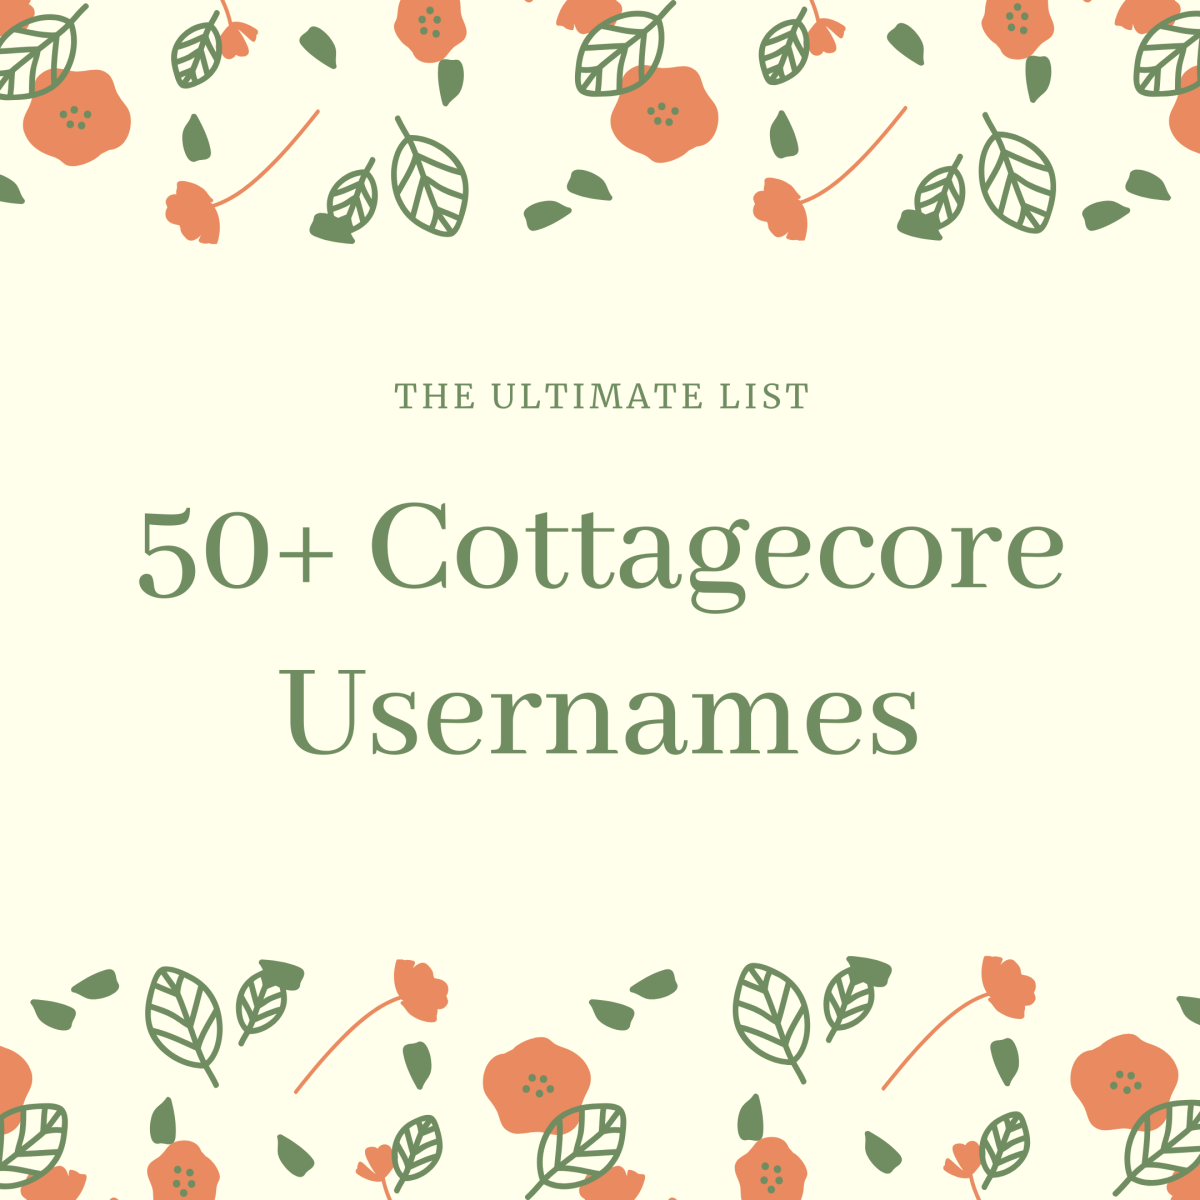 Discover over 50 cottagecore usernames in this in-depth guide!